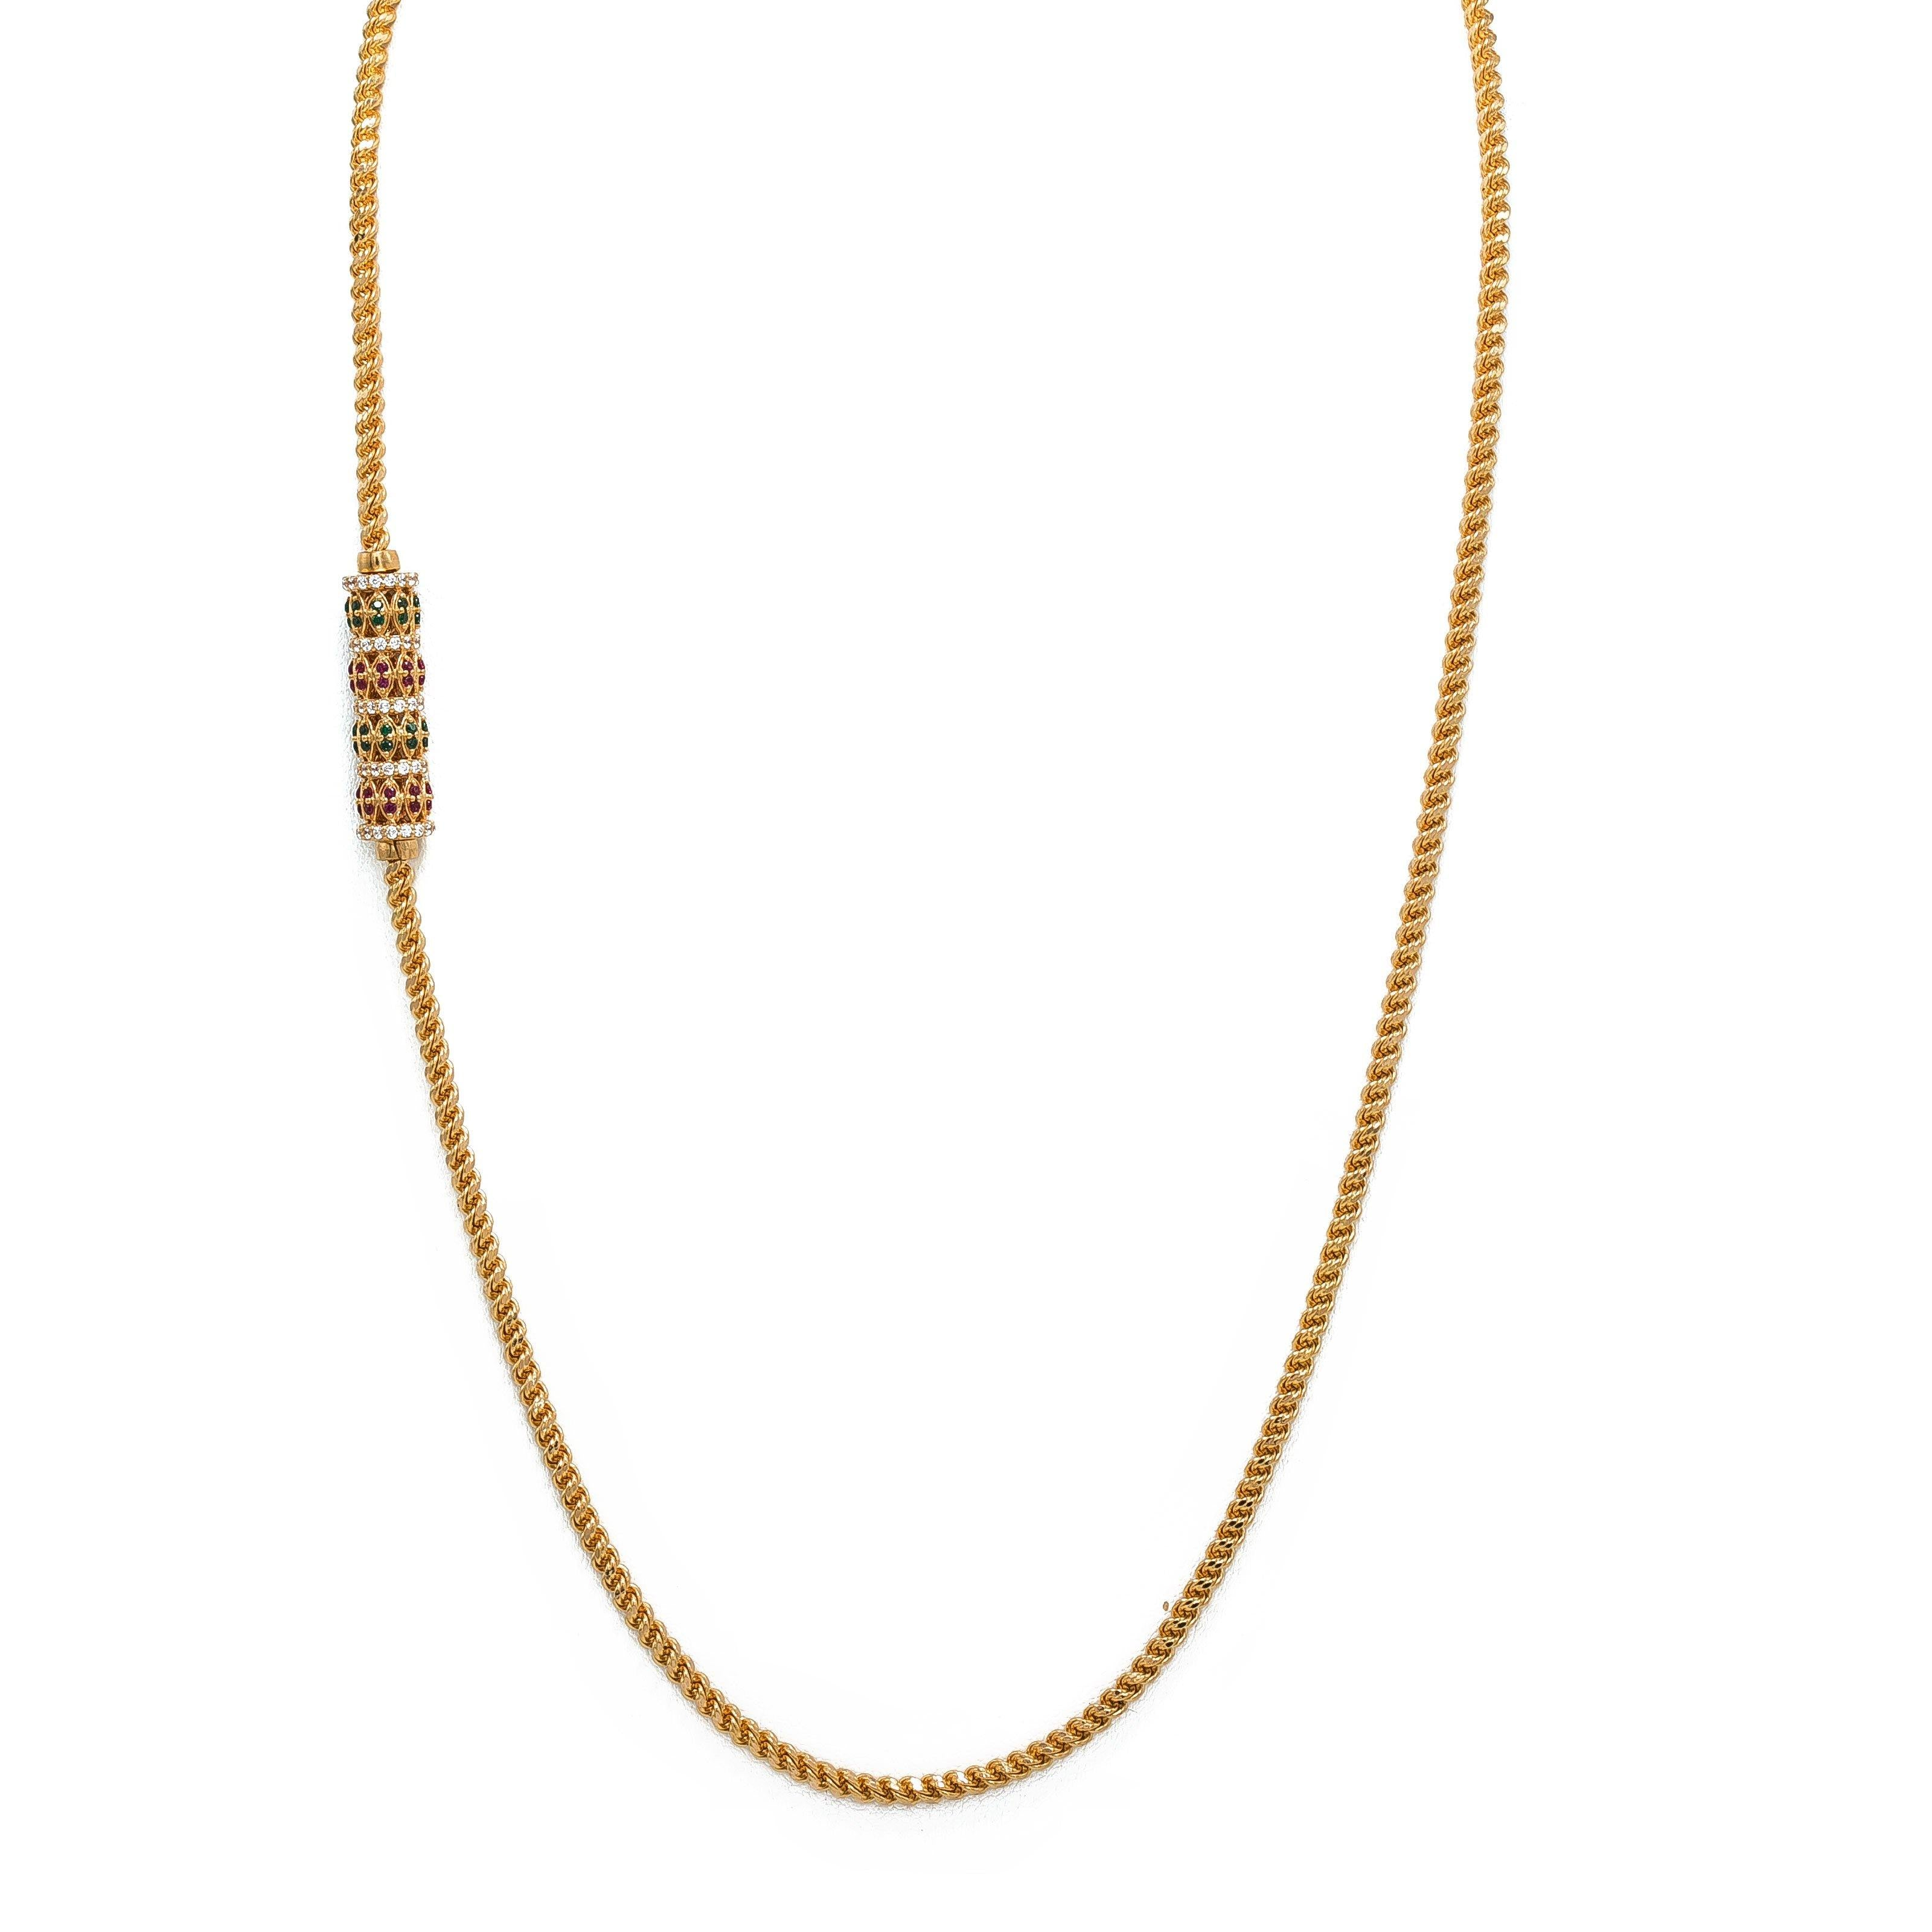 Gold Indian chains new photo